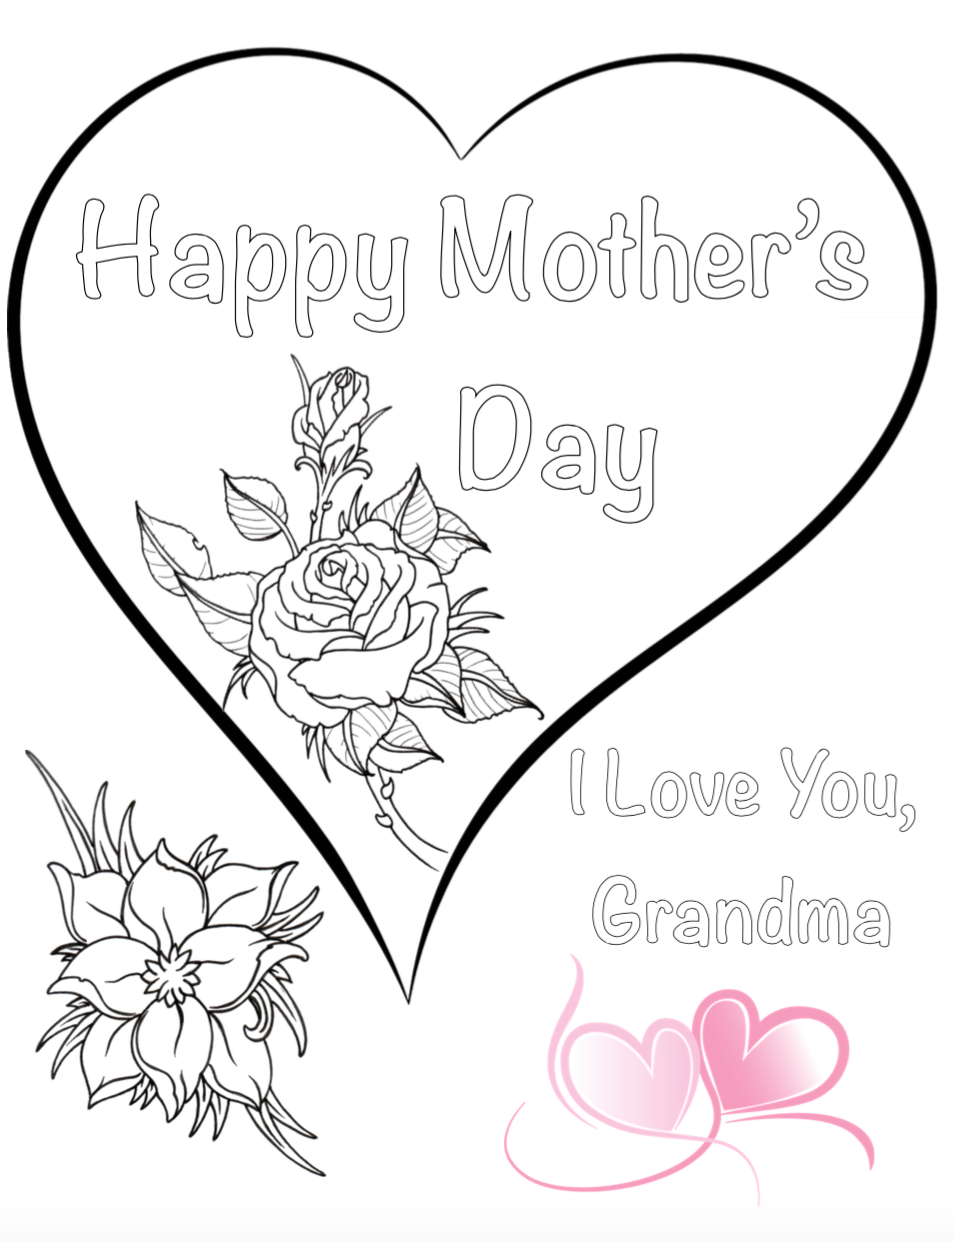 Free Printable Mother S Day Coloring Pages 4 Designs Mothers Day Coloring Pages Coloring Pages Free Printable Coloring Pages